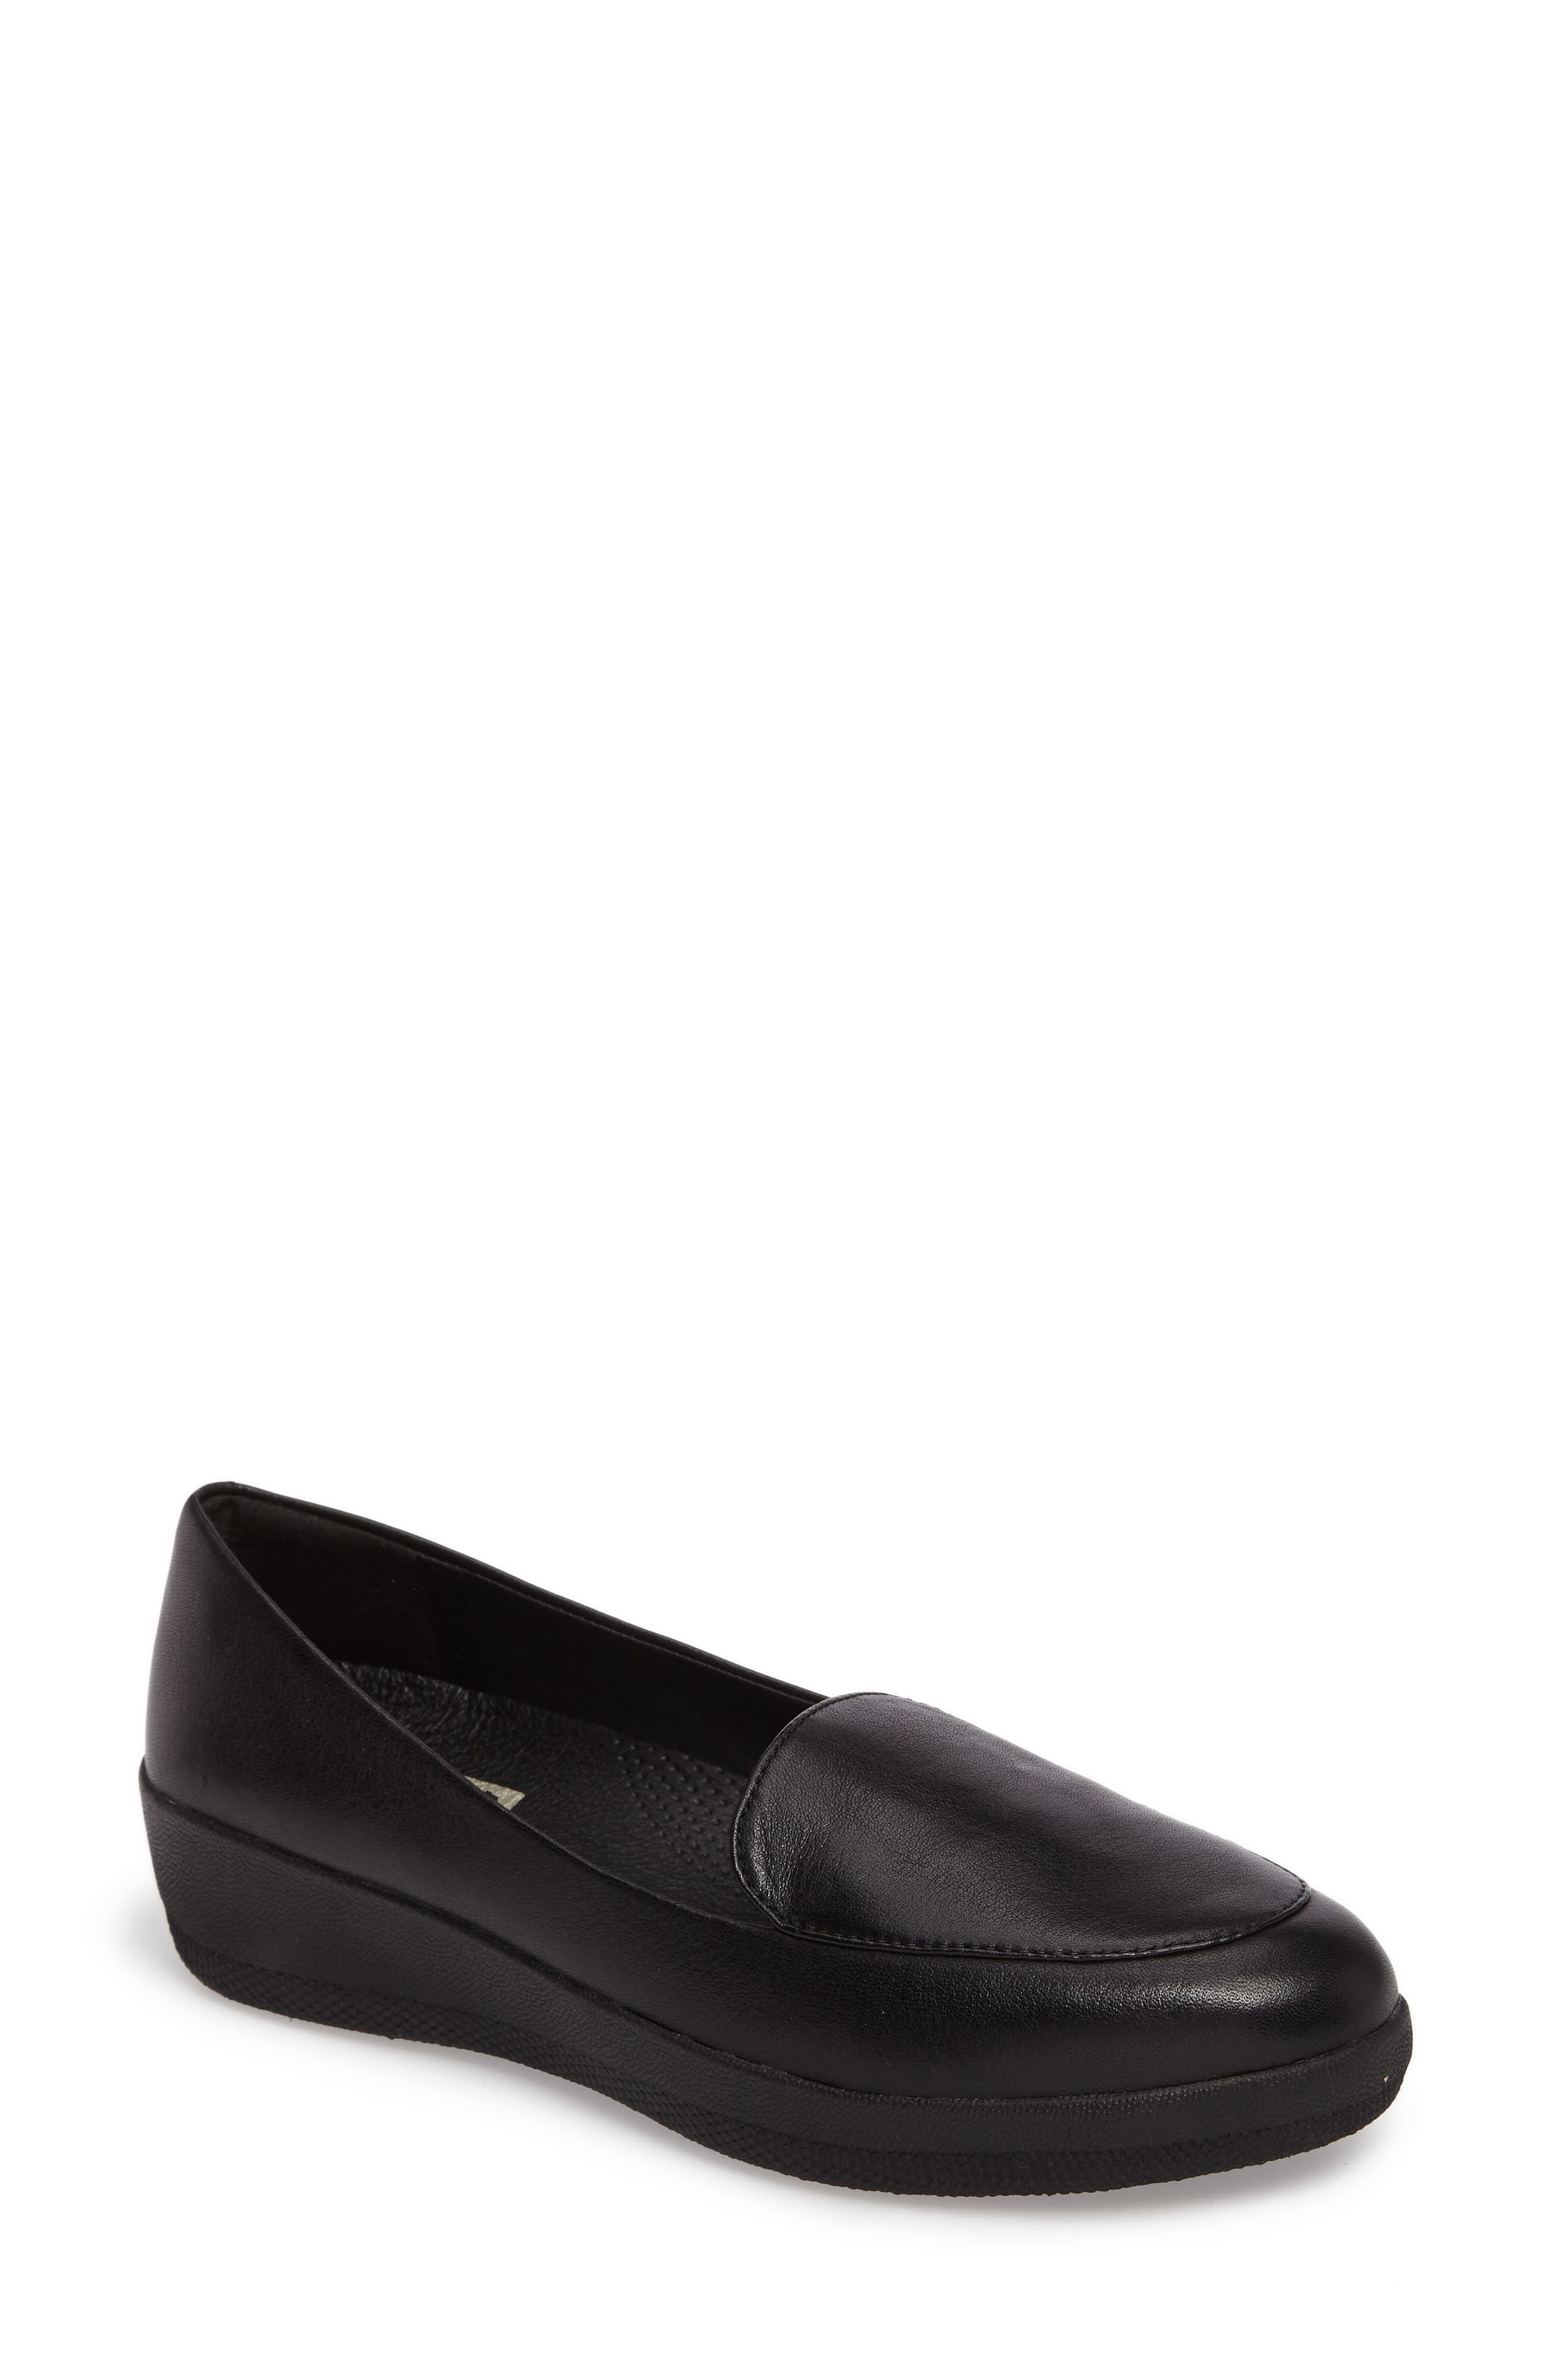 Sneaker Loafer Flat,                             Main thumbnail 1, color,                             001